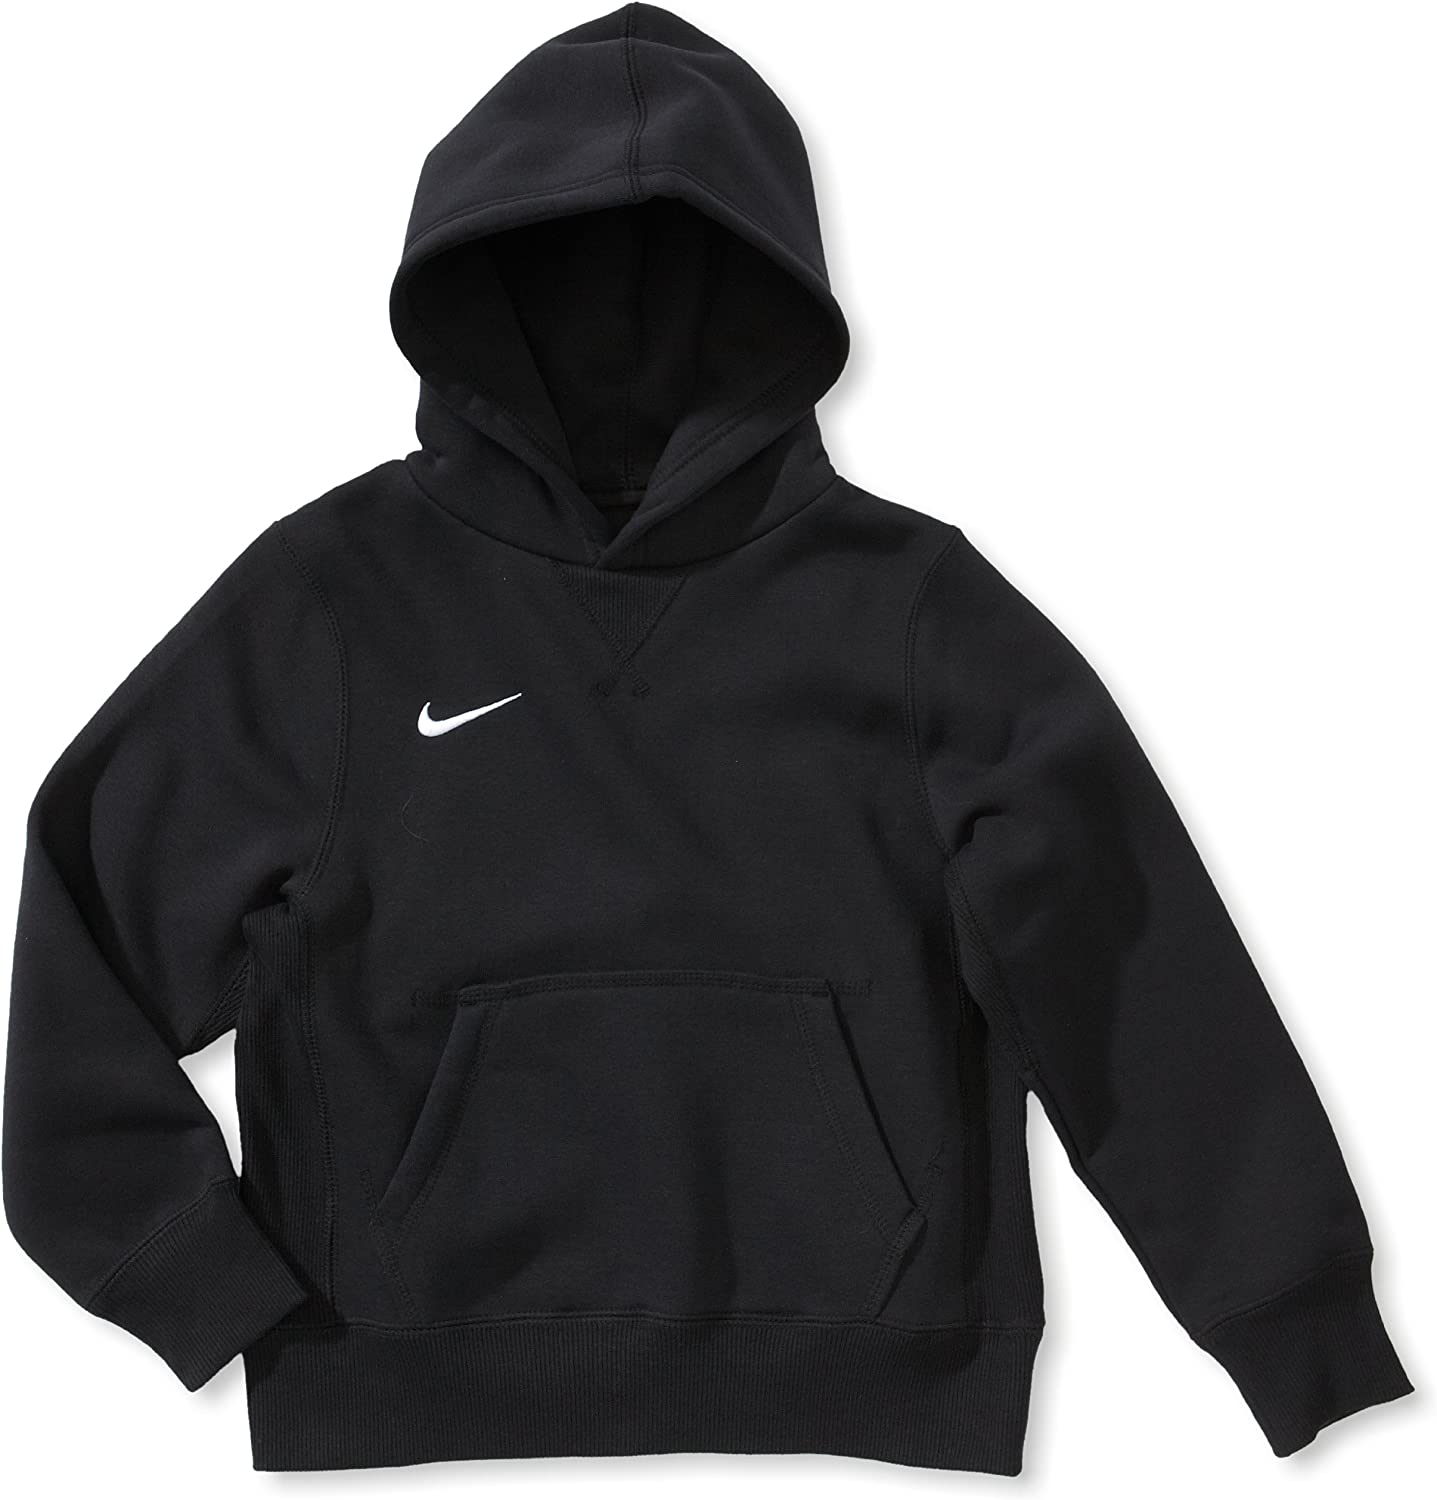 Nike 456001 Sweat Shirt à Capuche Mixte Enfant, Noir, FR